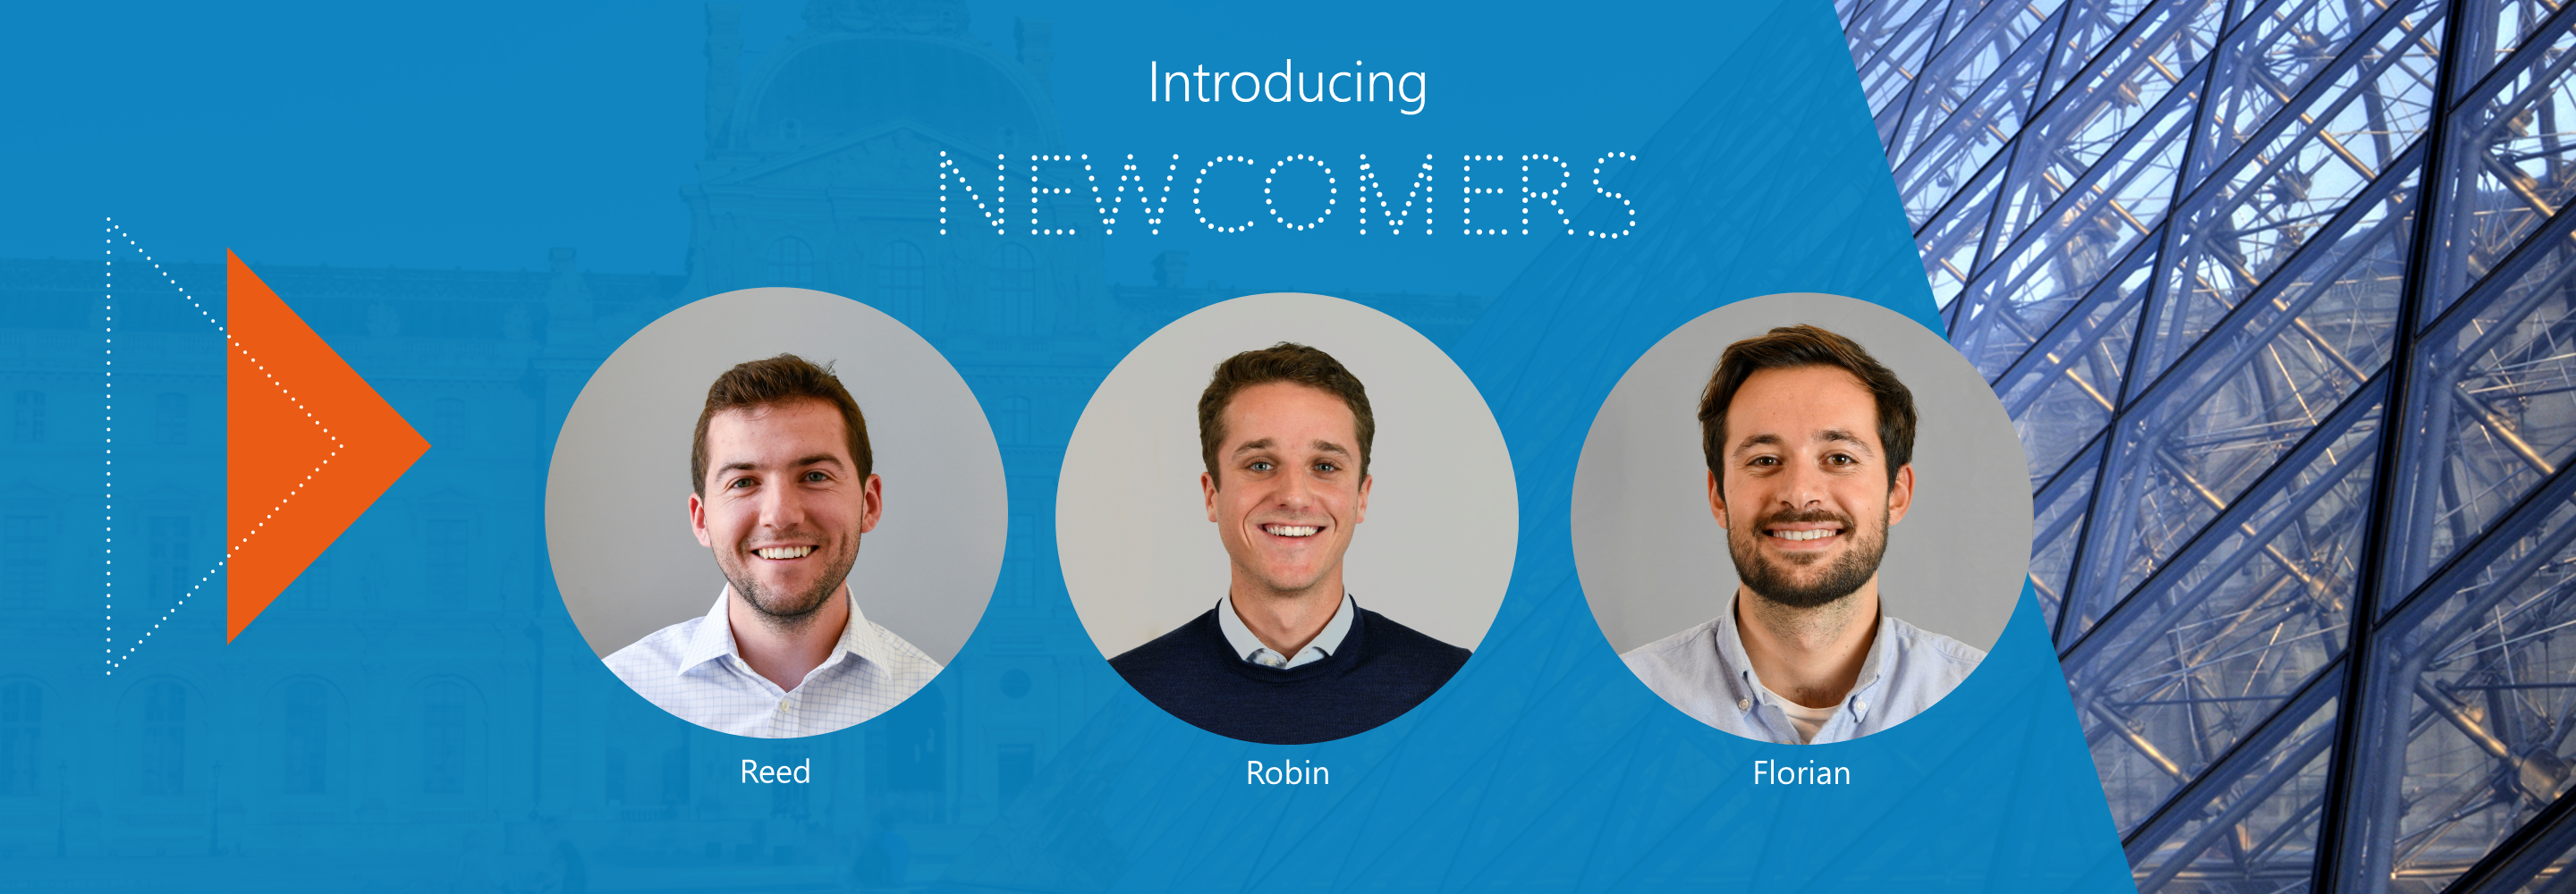 Welcome to Robin, Reed and Florian